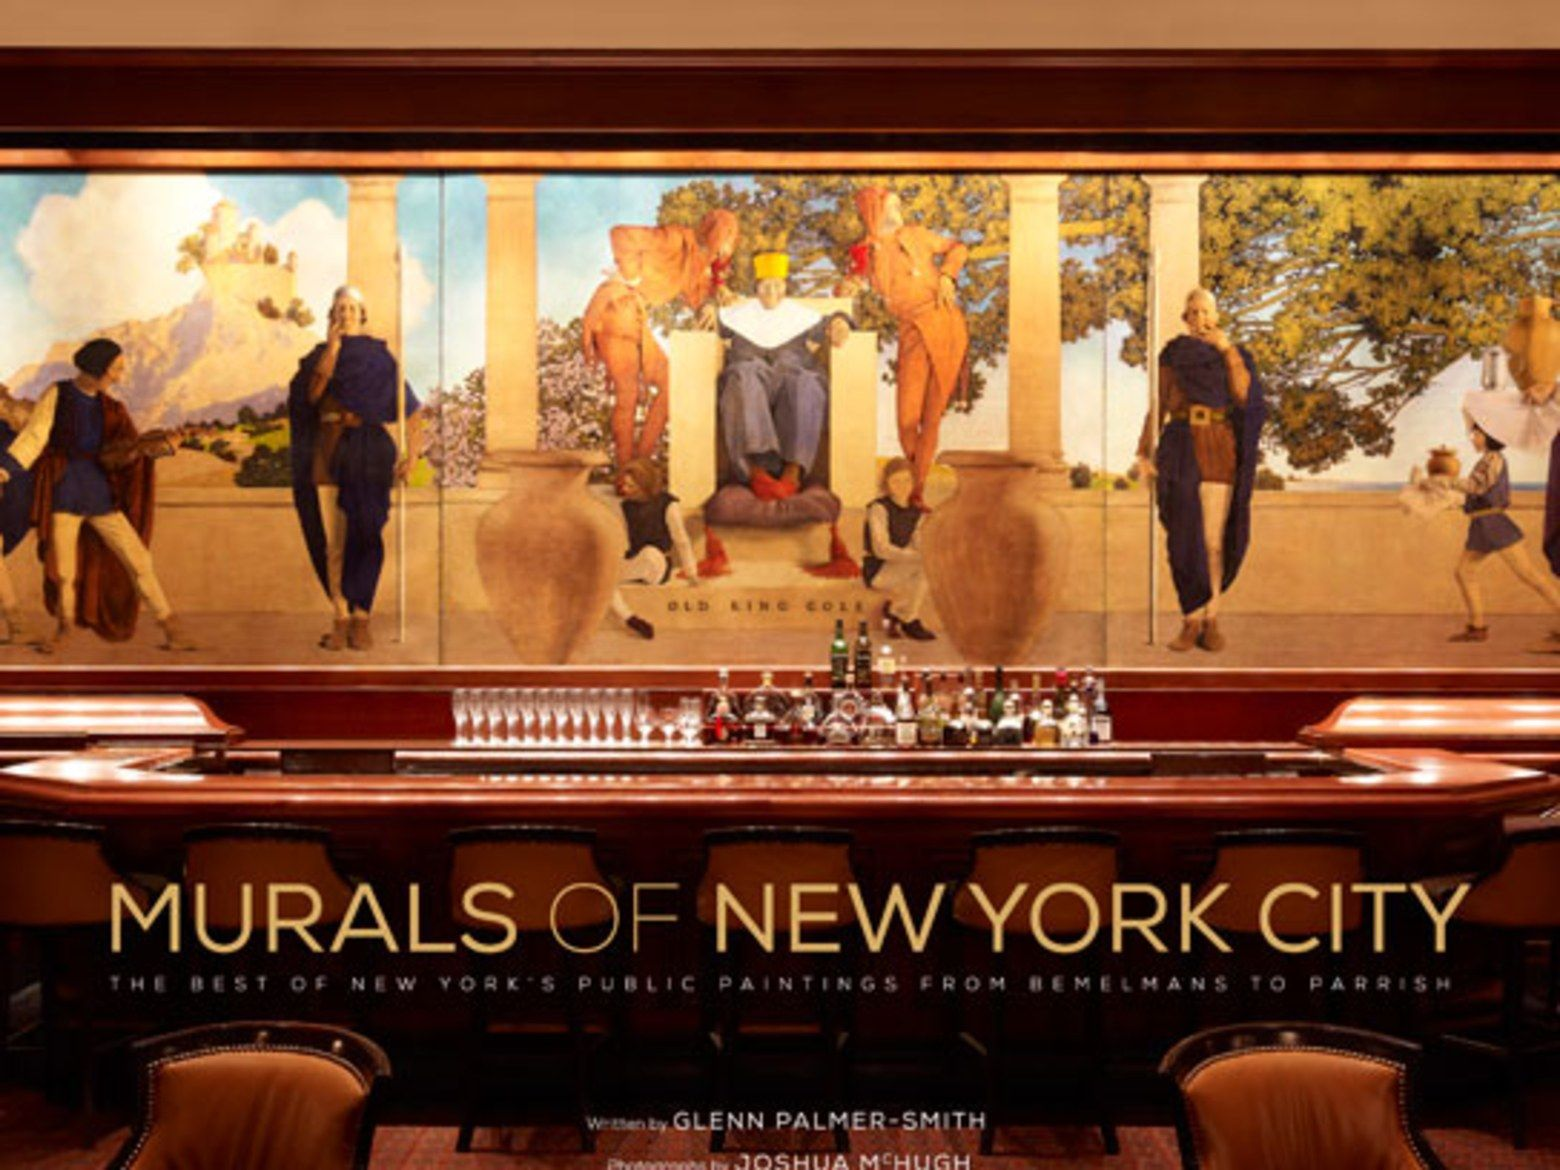 The book murals of new york city looks at important public the book murals of new york city looks at important geotapseo Image collections